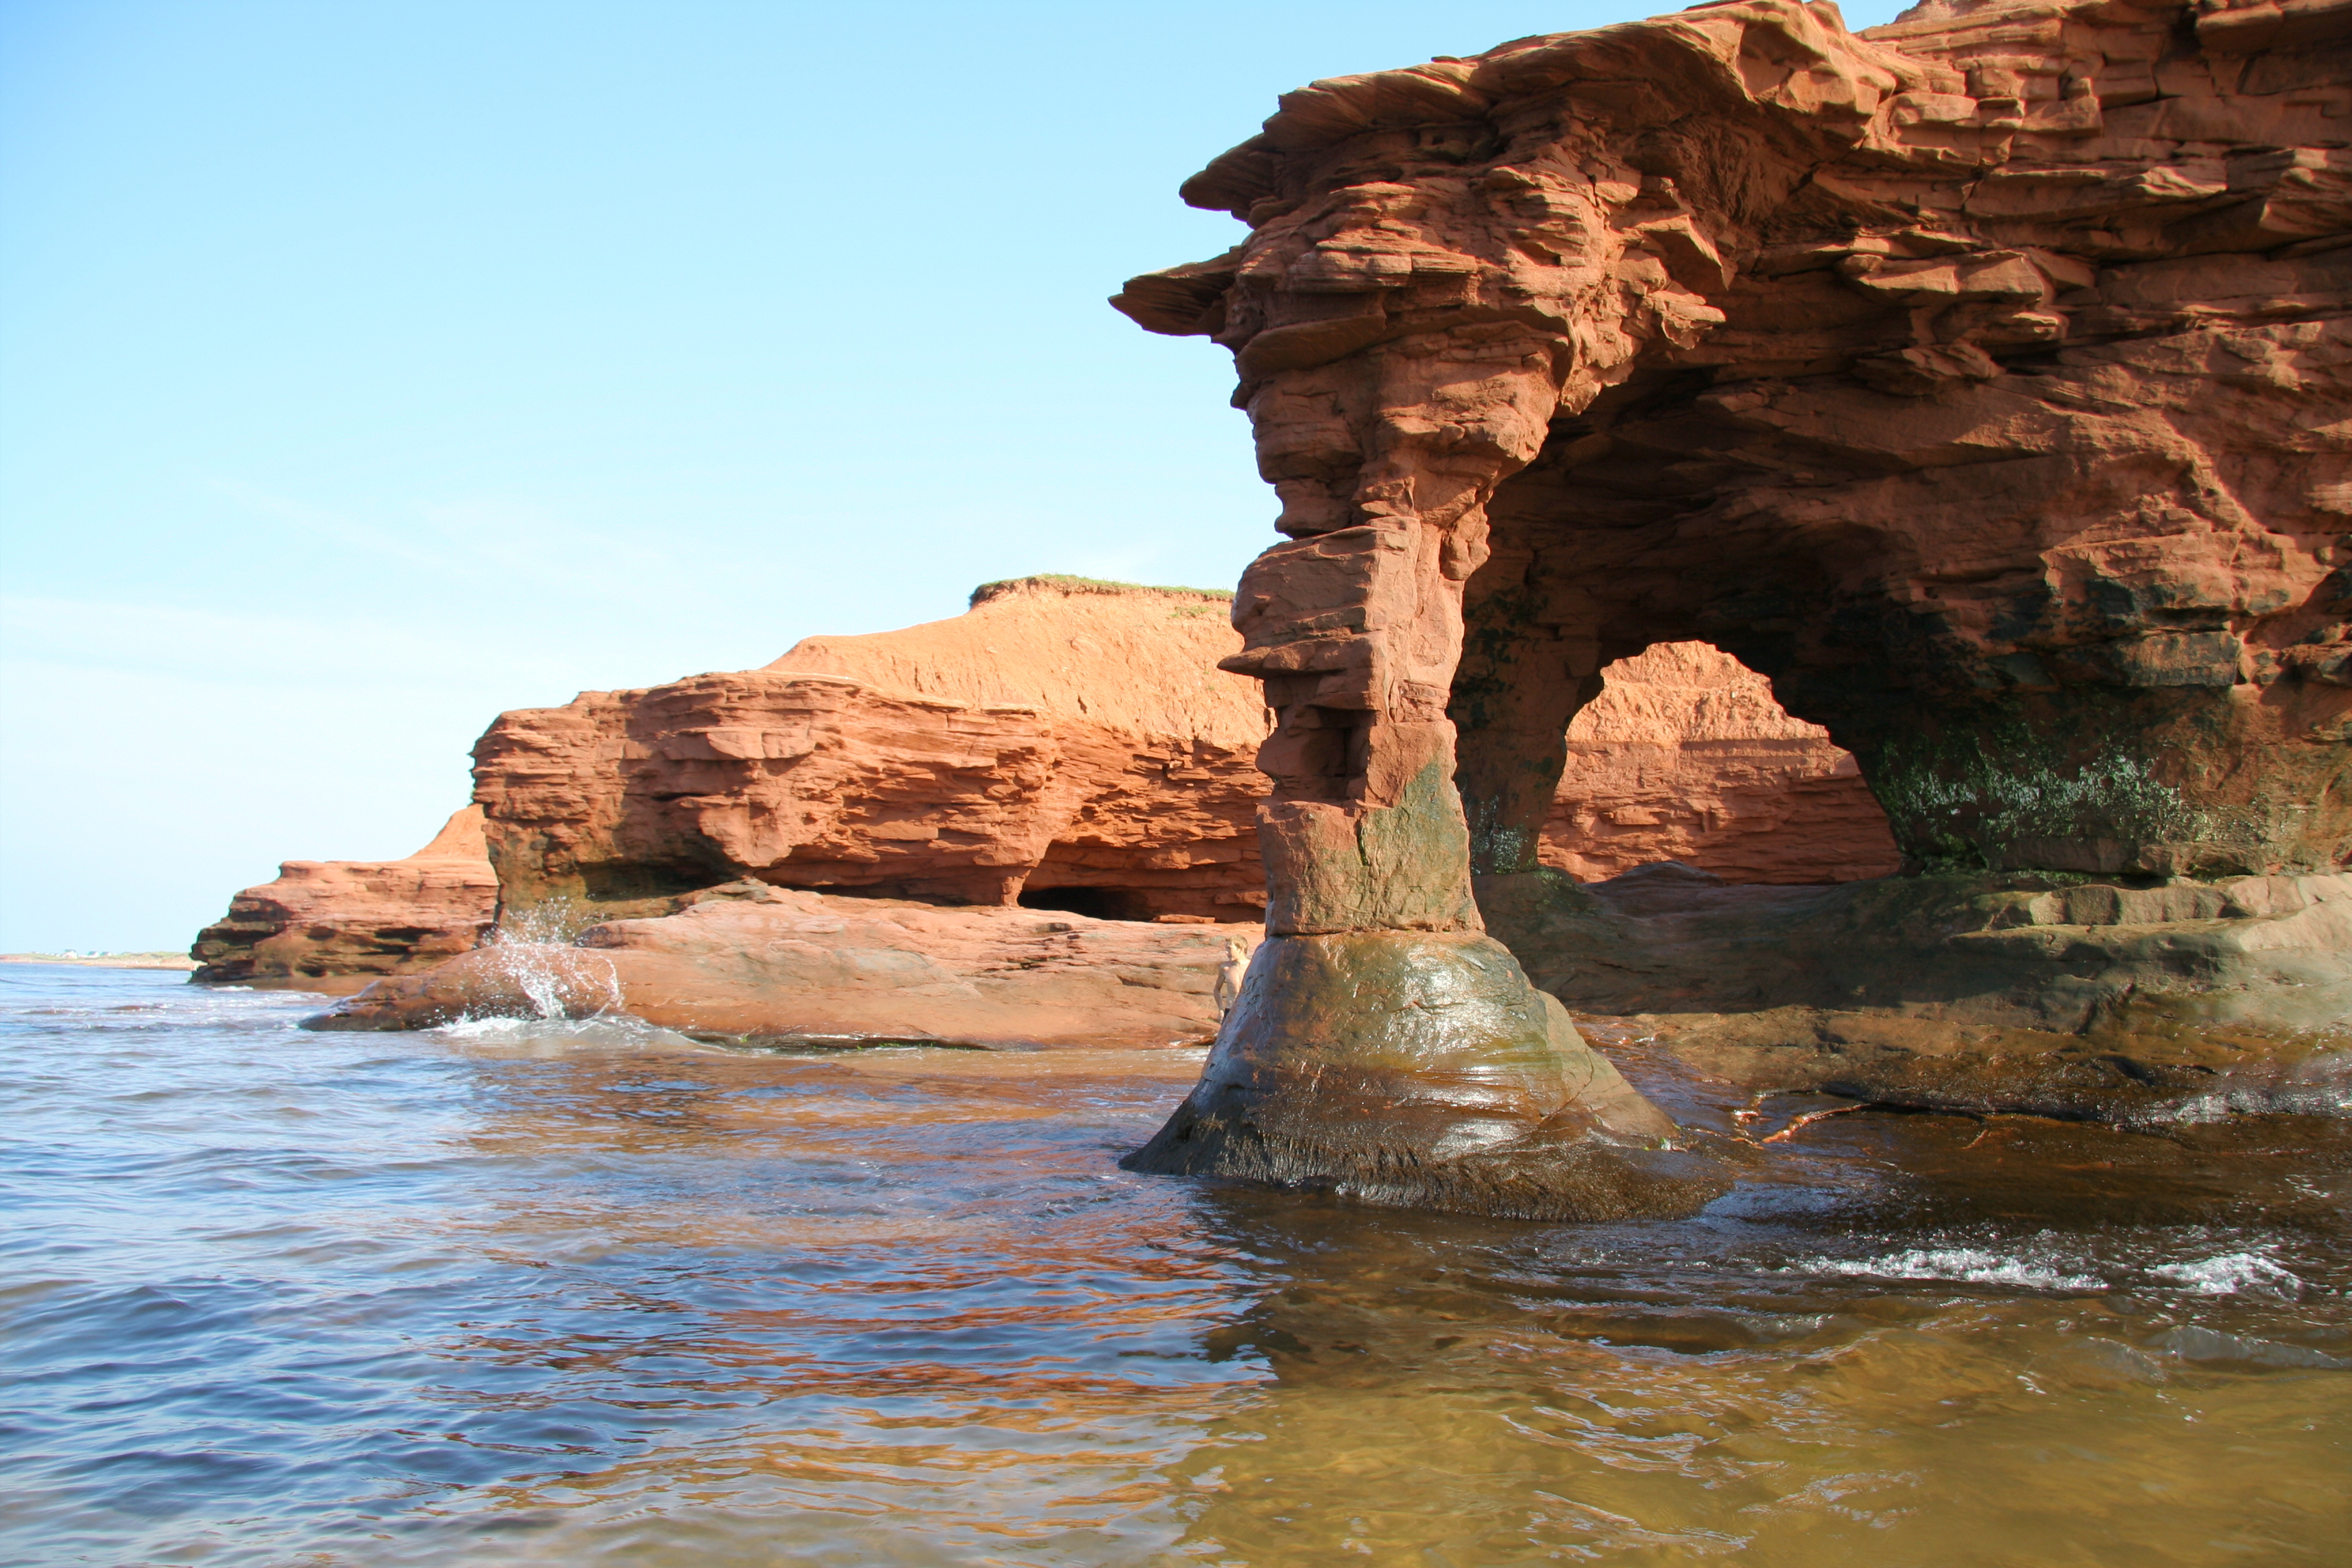 Sandstone Arch on the Scarlet Coasts